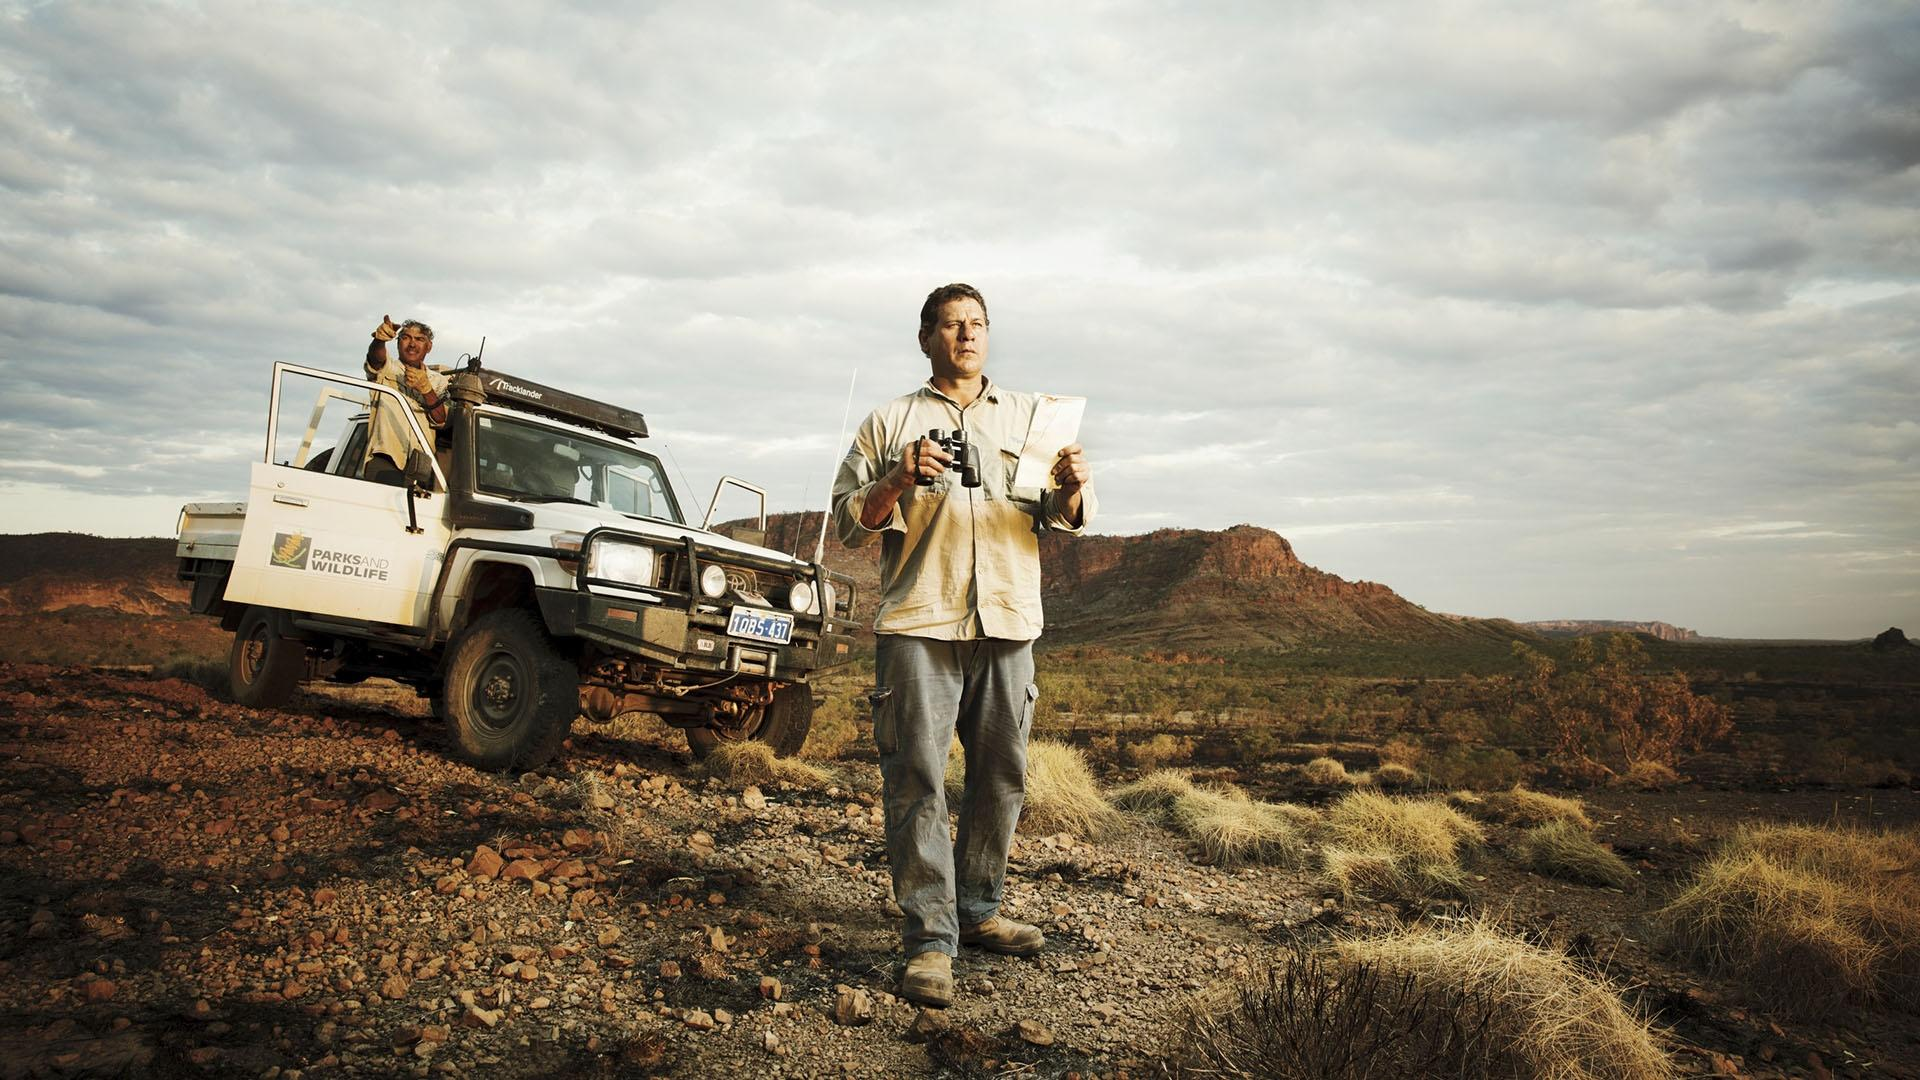 Outback: Return of the Wet